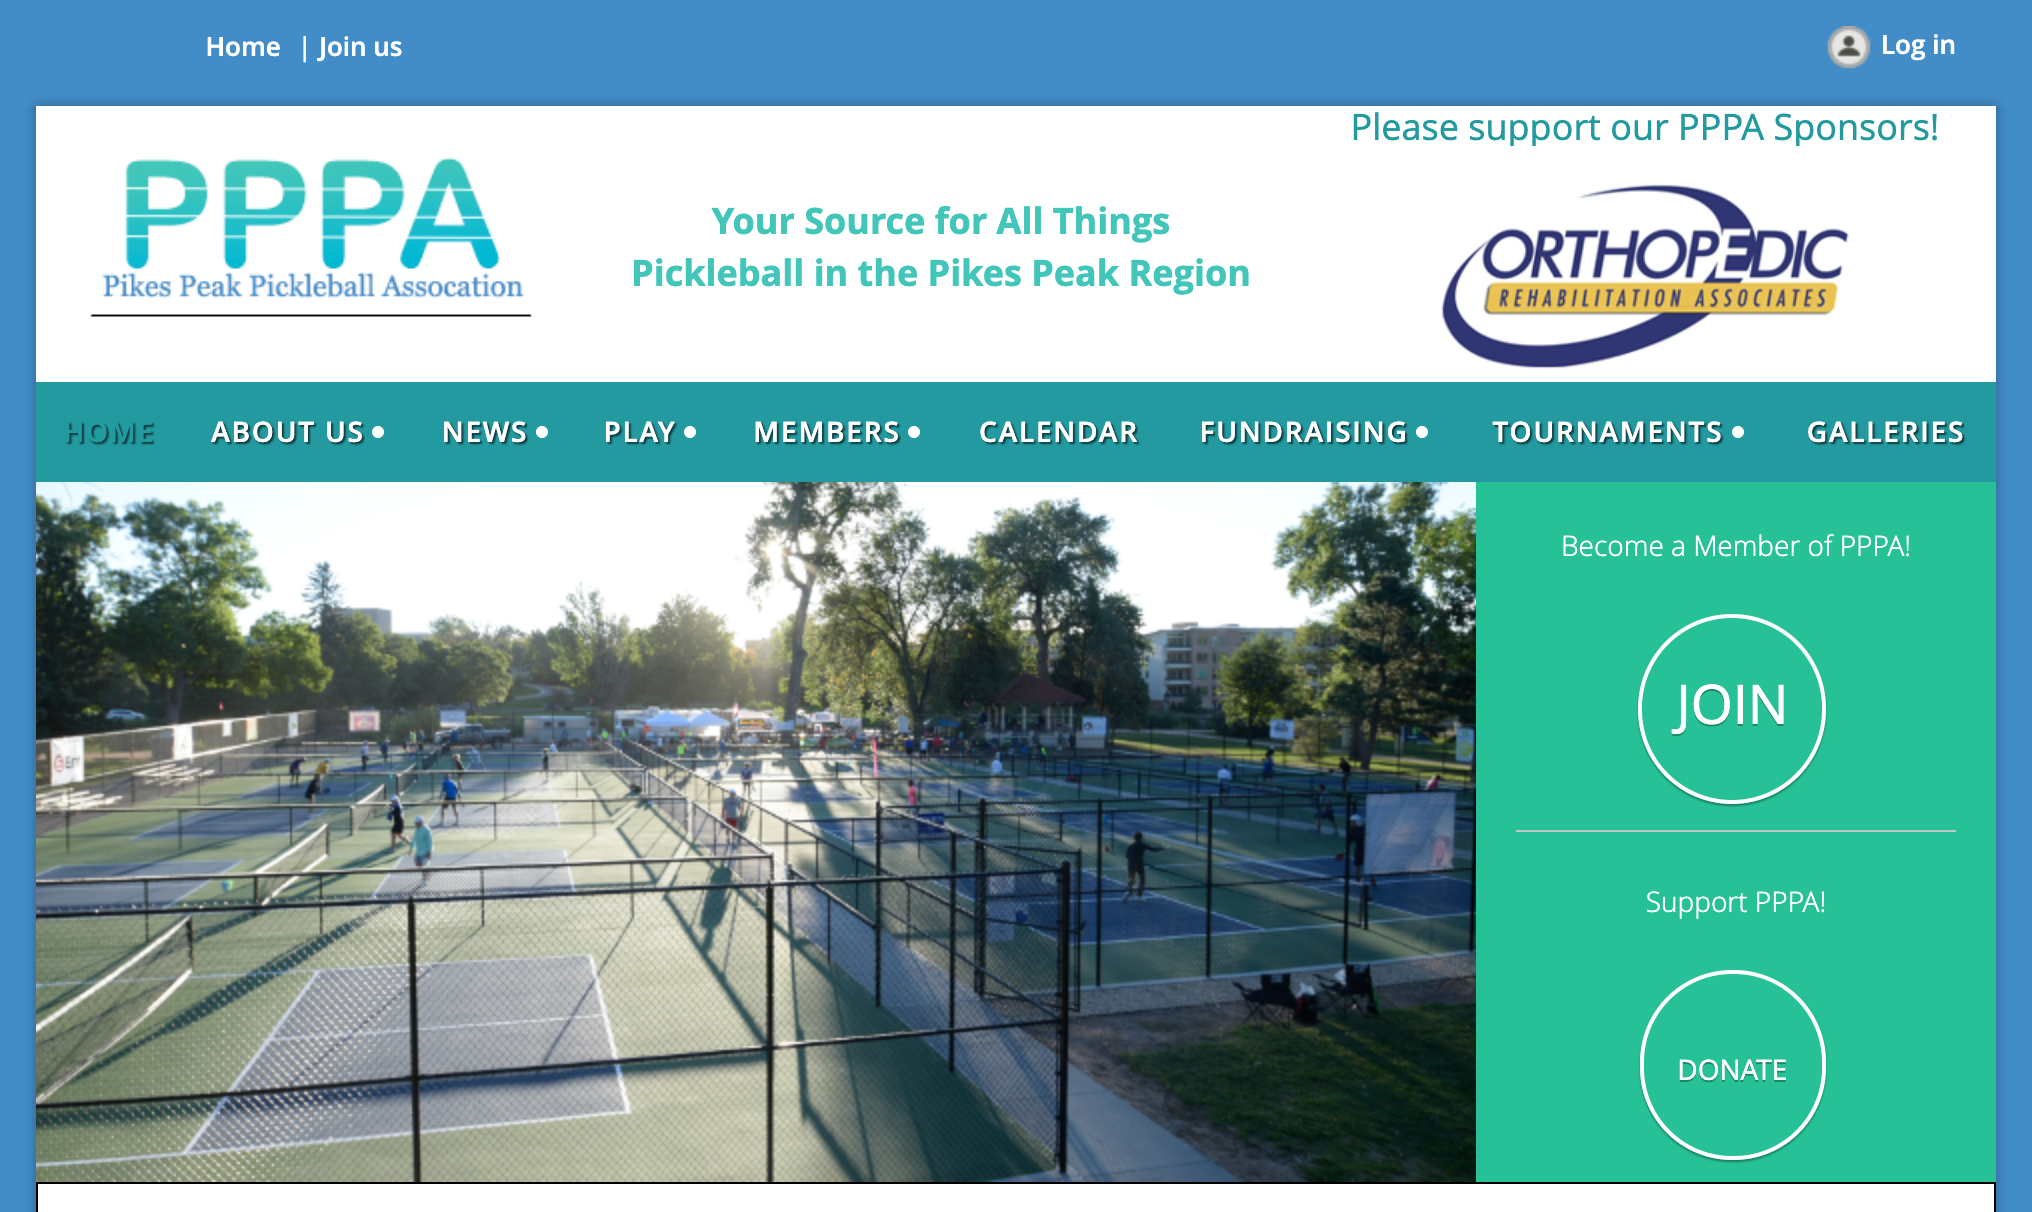 Pikes Peak Pickleball Association website